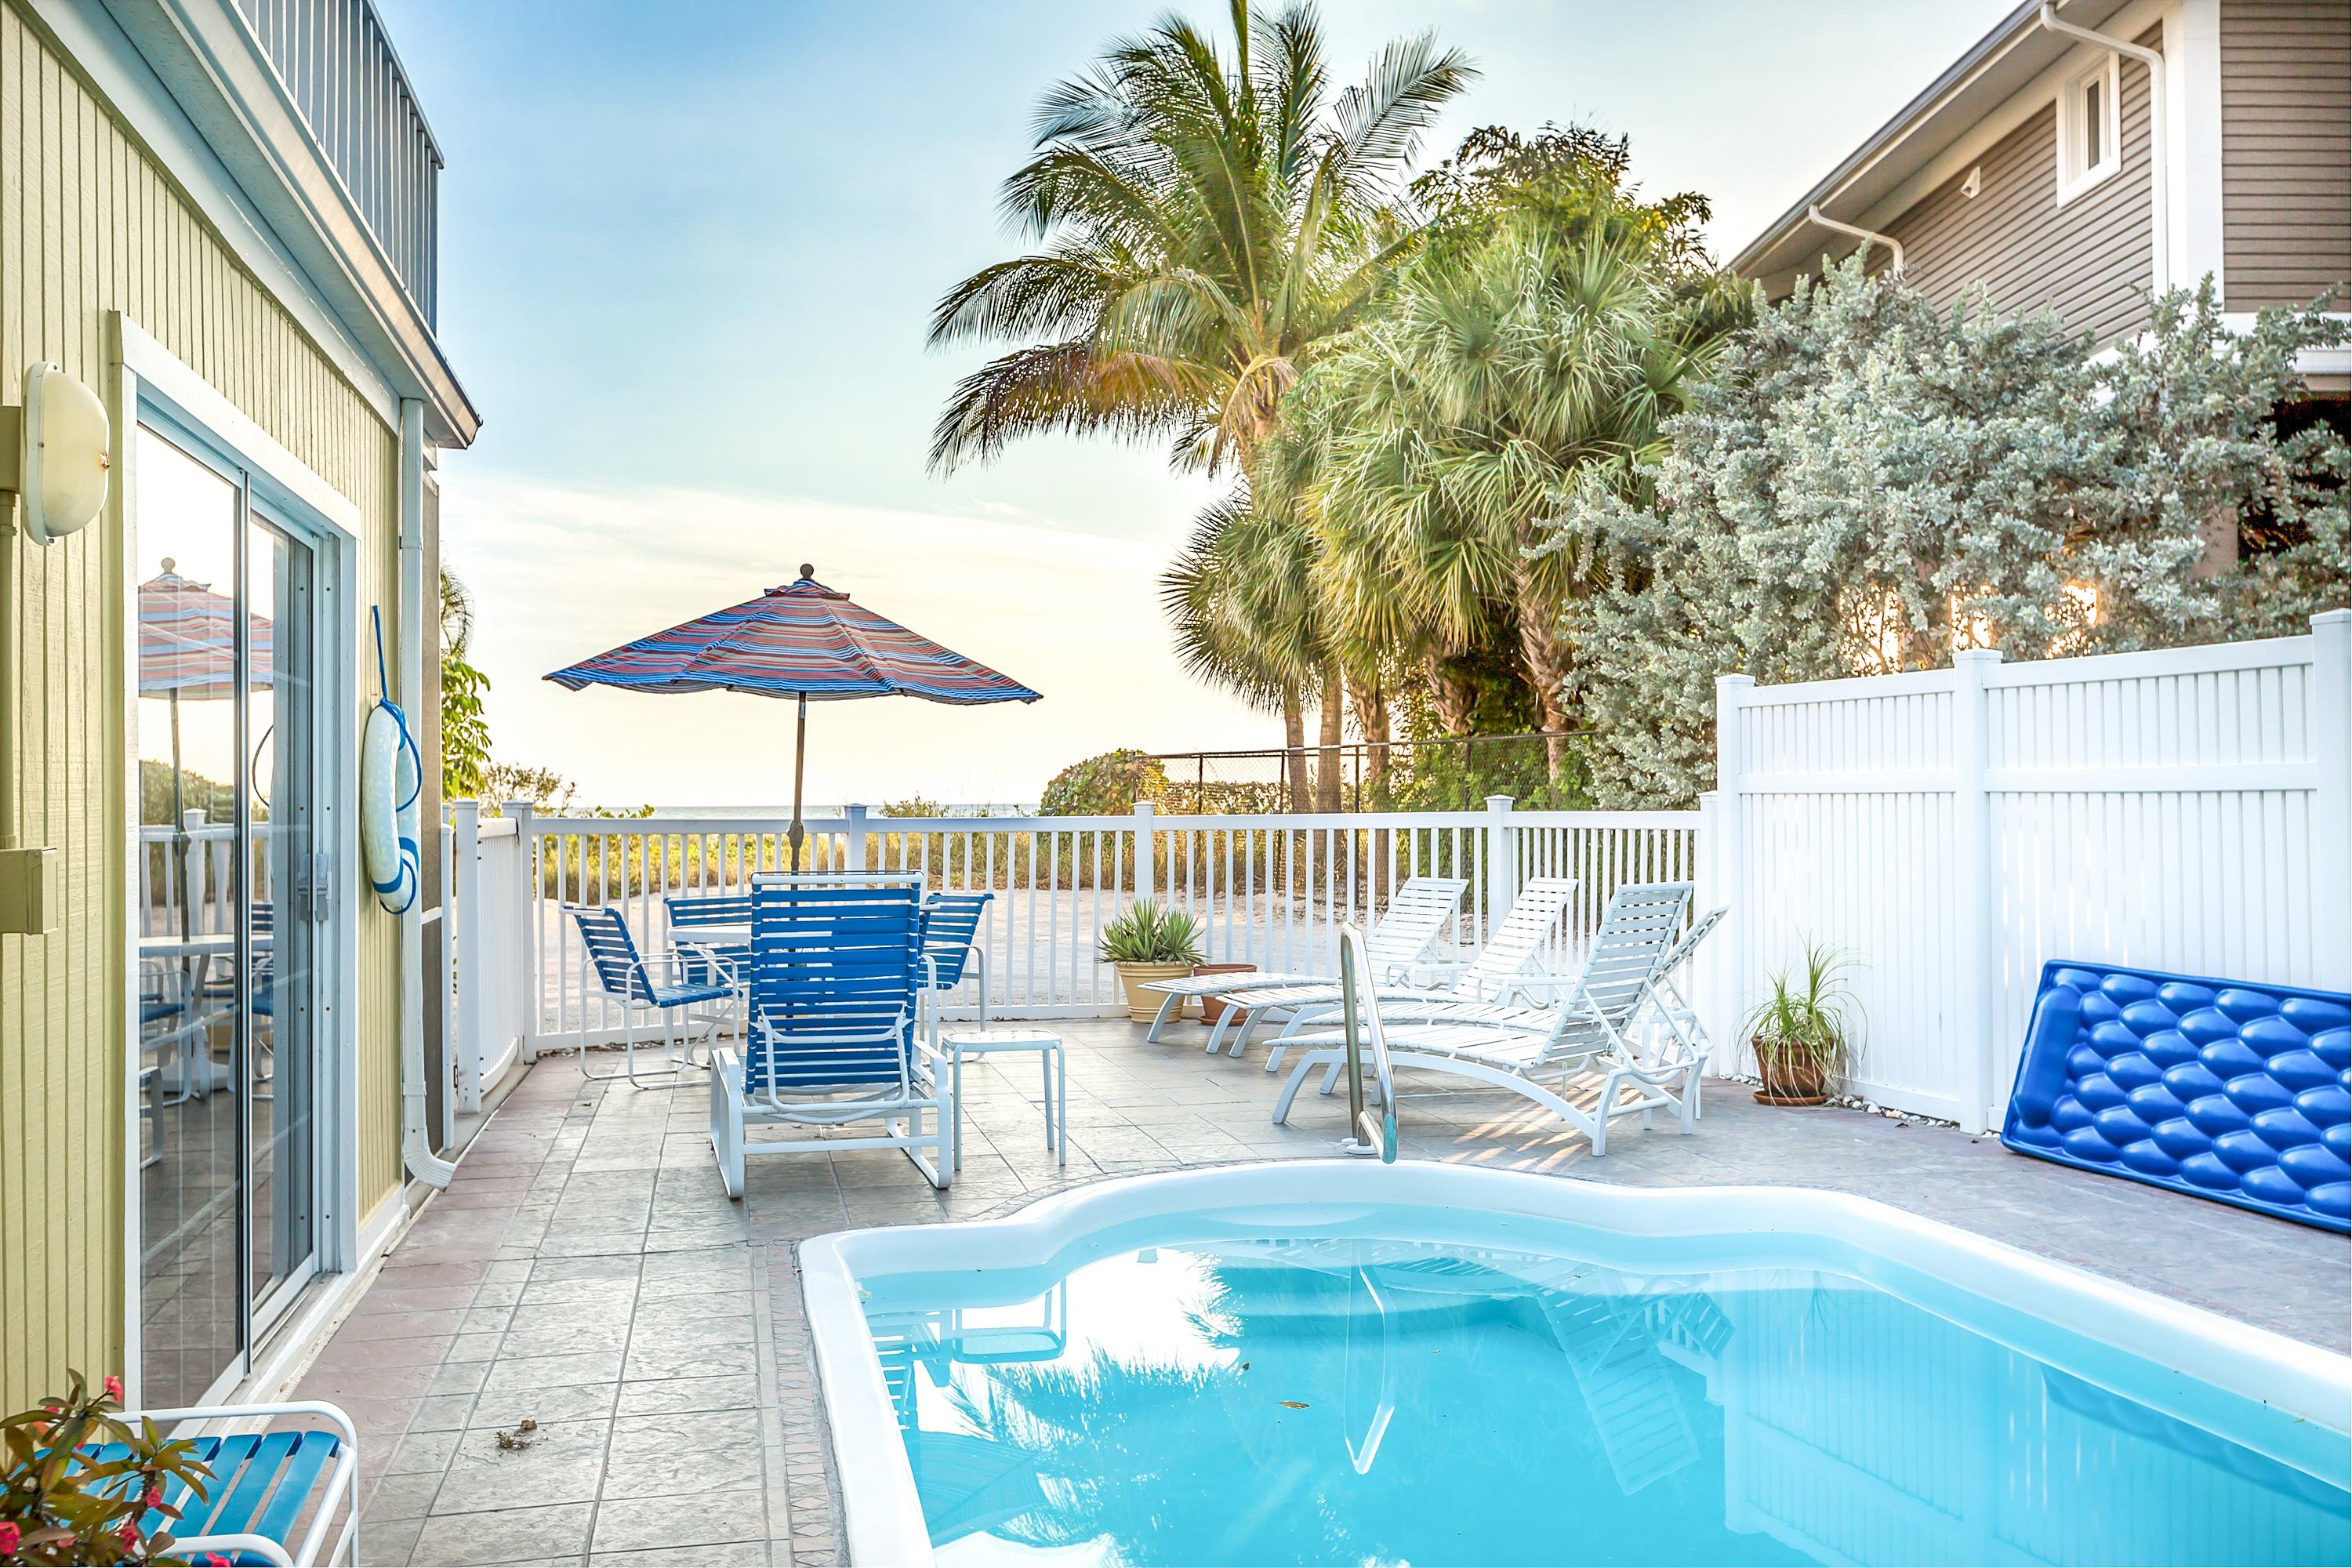 Swim in a private pool with loungers, an outdoor dining set, and a Gulf view.